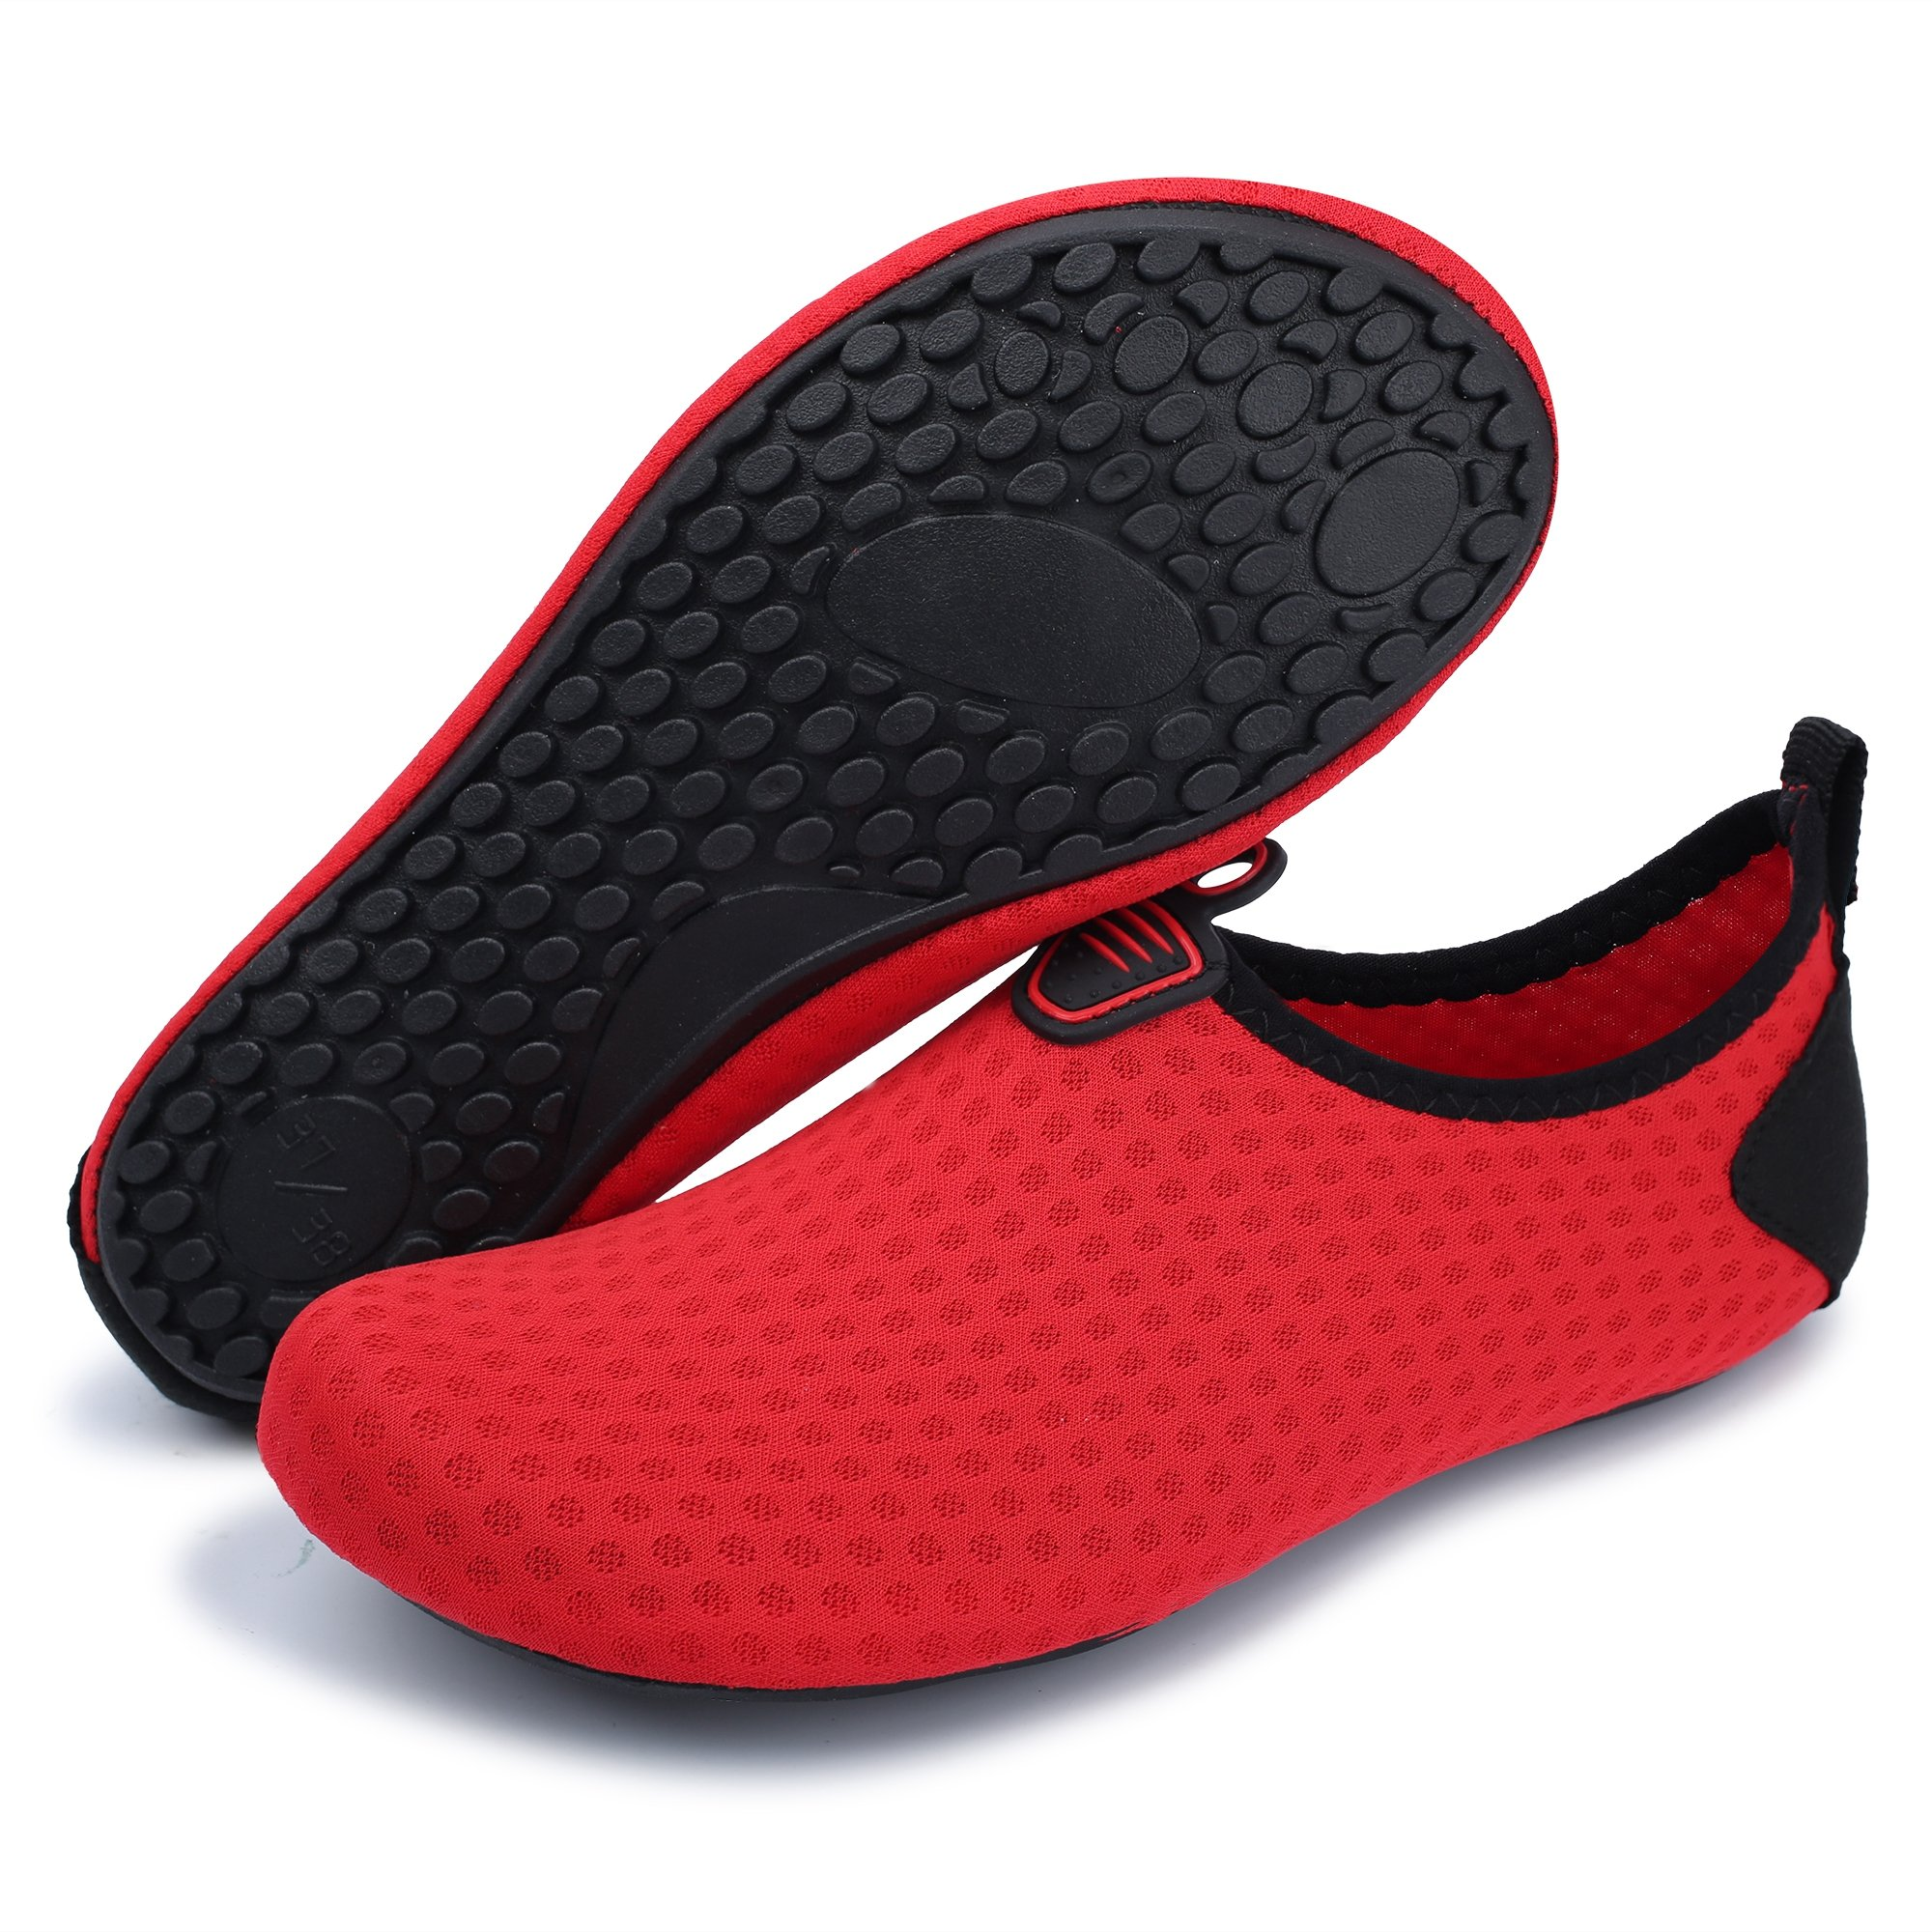 MoreDays Non-Slip Water Sport Shoes Light Barefoot Quick Dry Aqua Socks for Beach Pool Swimming Yoga Exercise red 3XL